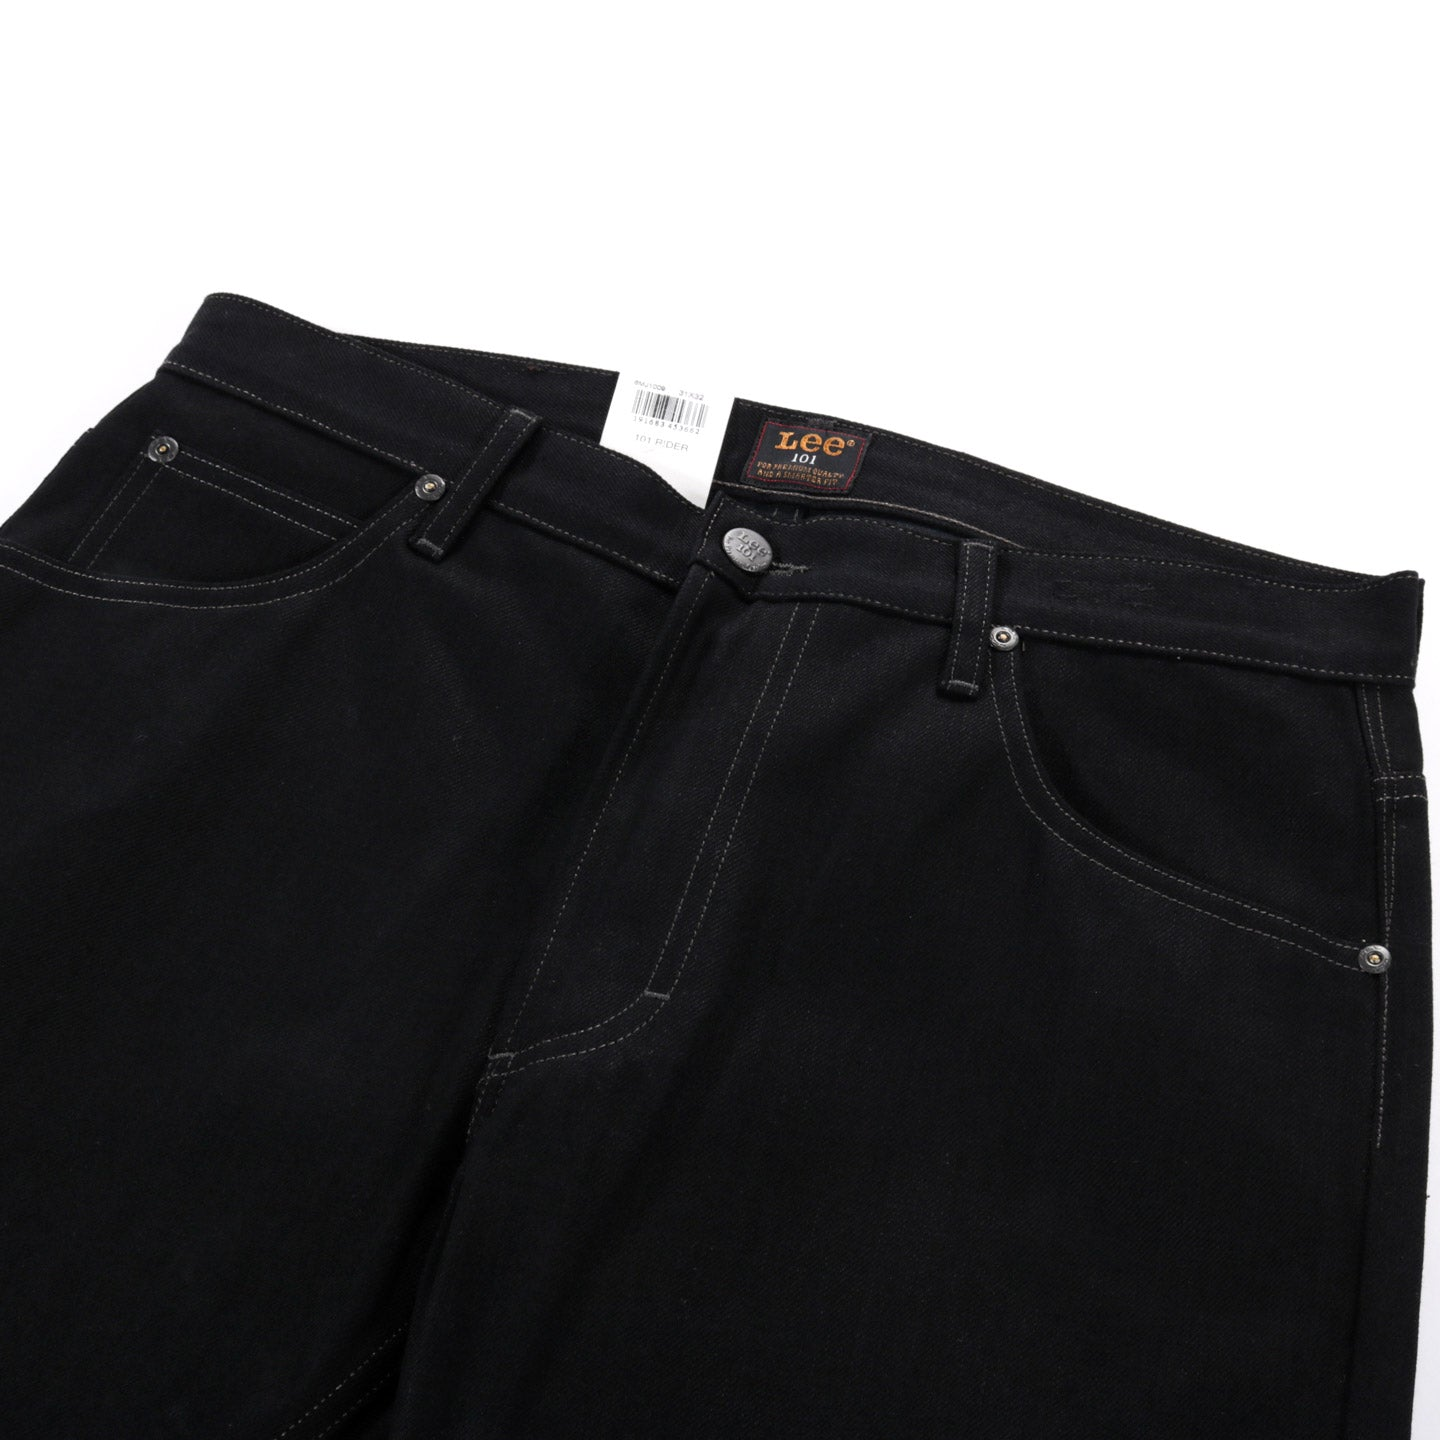 LEVI'S MADE & CRAFTED STUDIO TAPER WINKIPOP